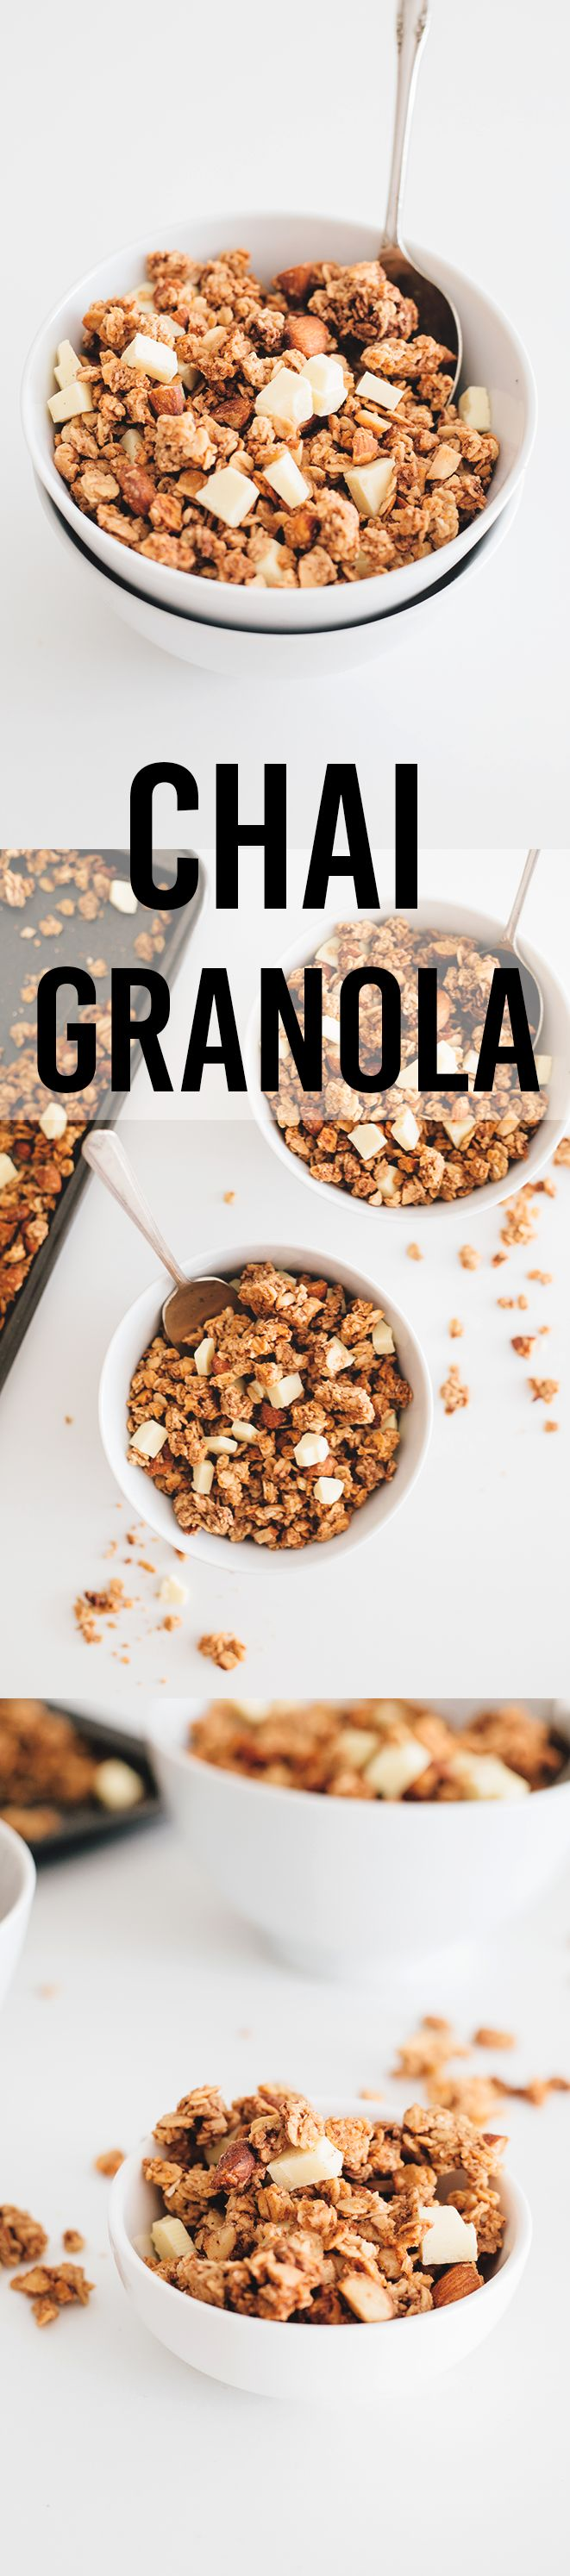 Delicious Chai Spiced Vegan Granola with Vegan White Chocolate Chunks.